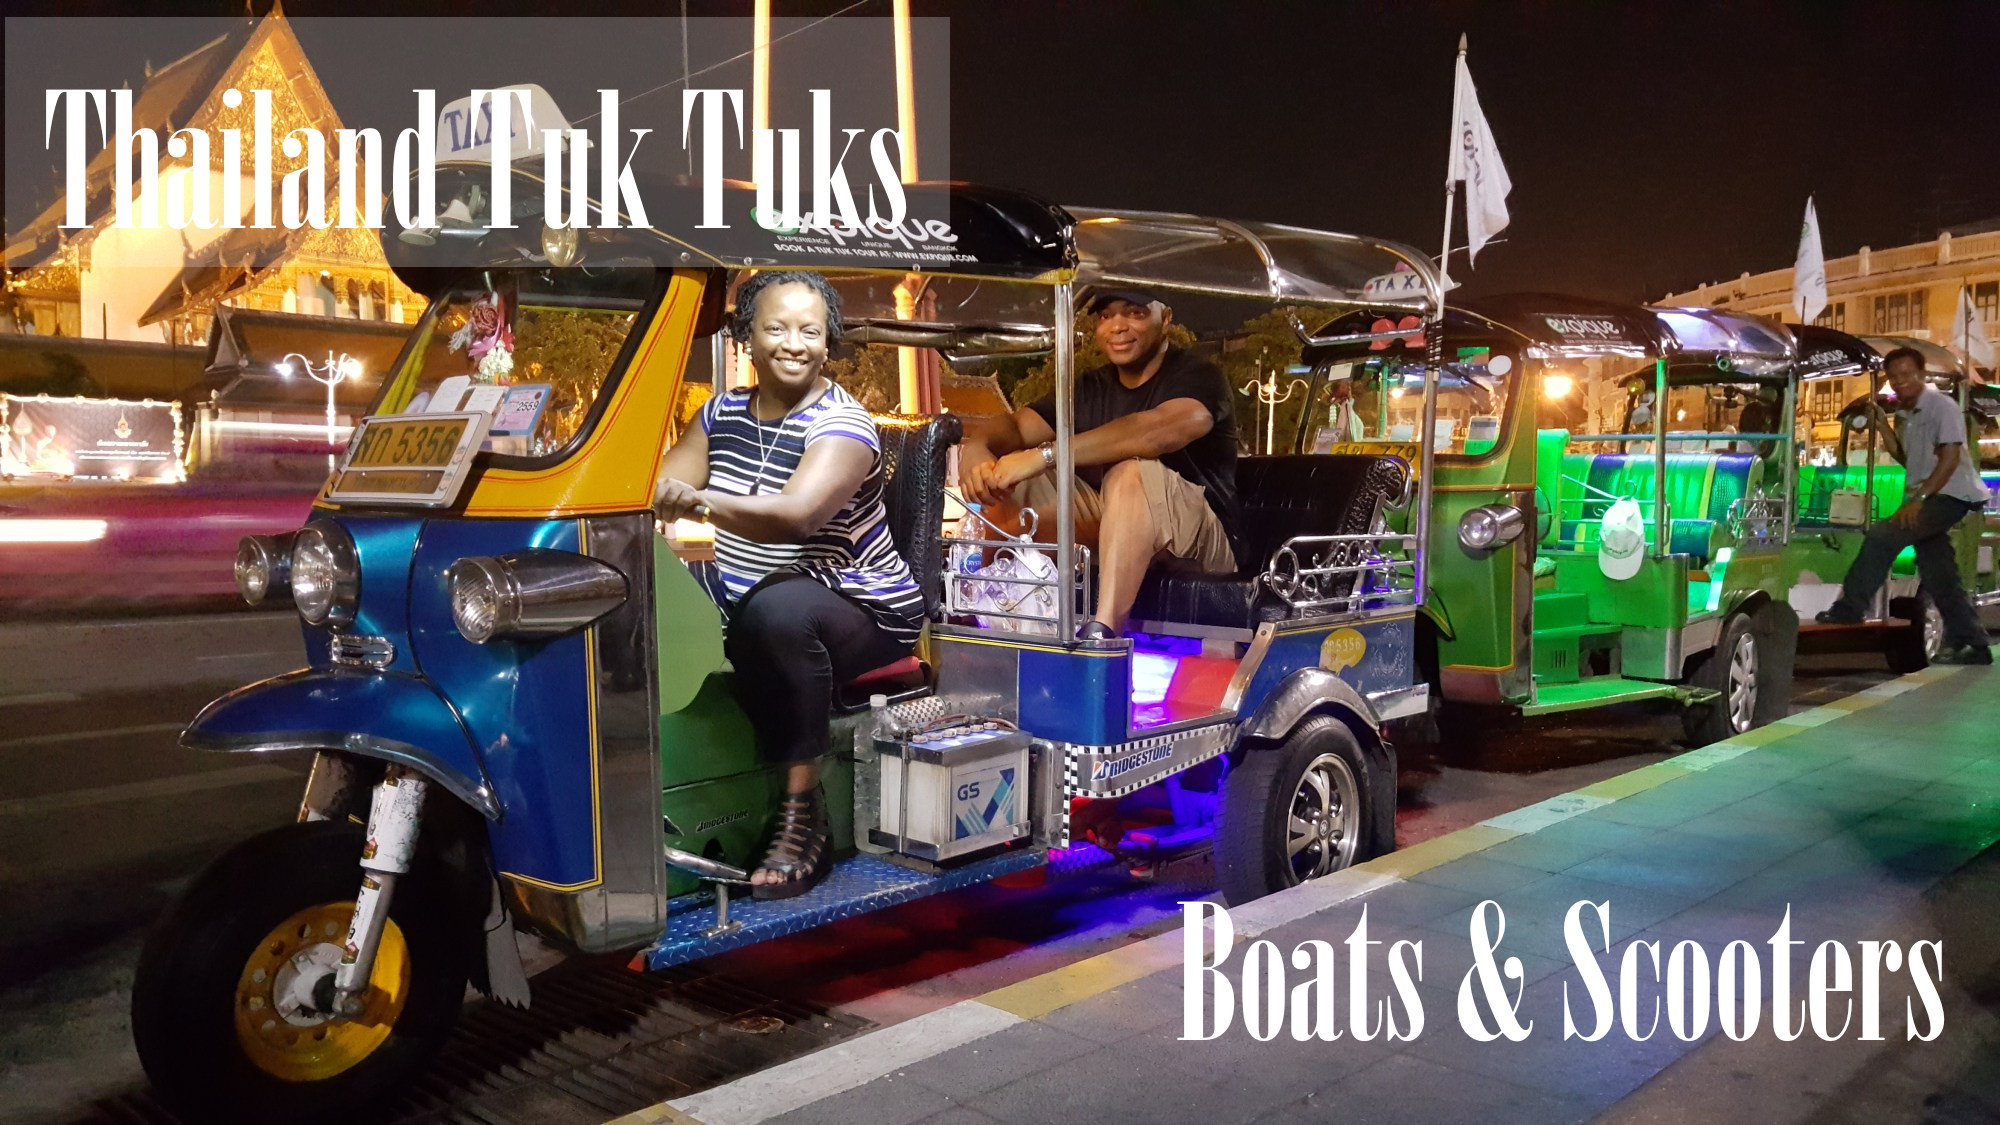 Rask Thailand's Tuk Tuks, Scooters and Canoes | duffelbagspouse travel tips PF-87